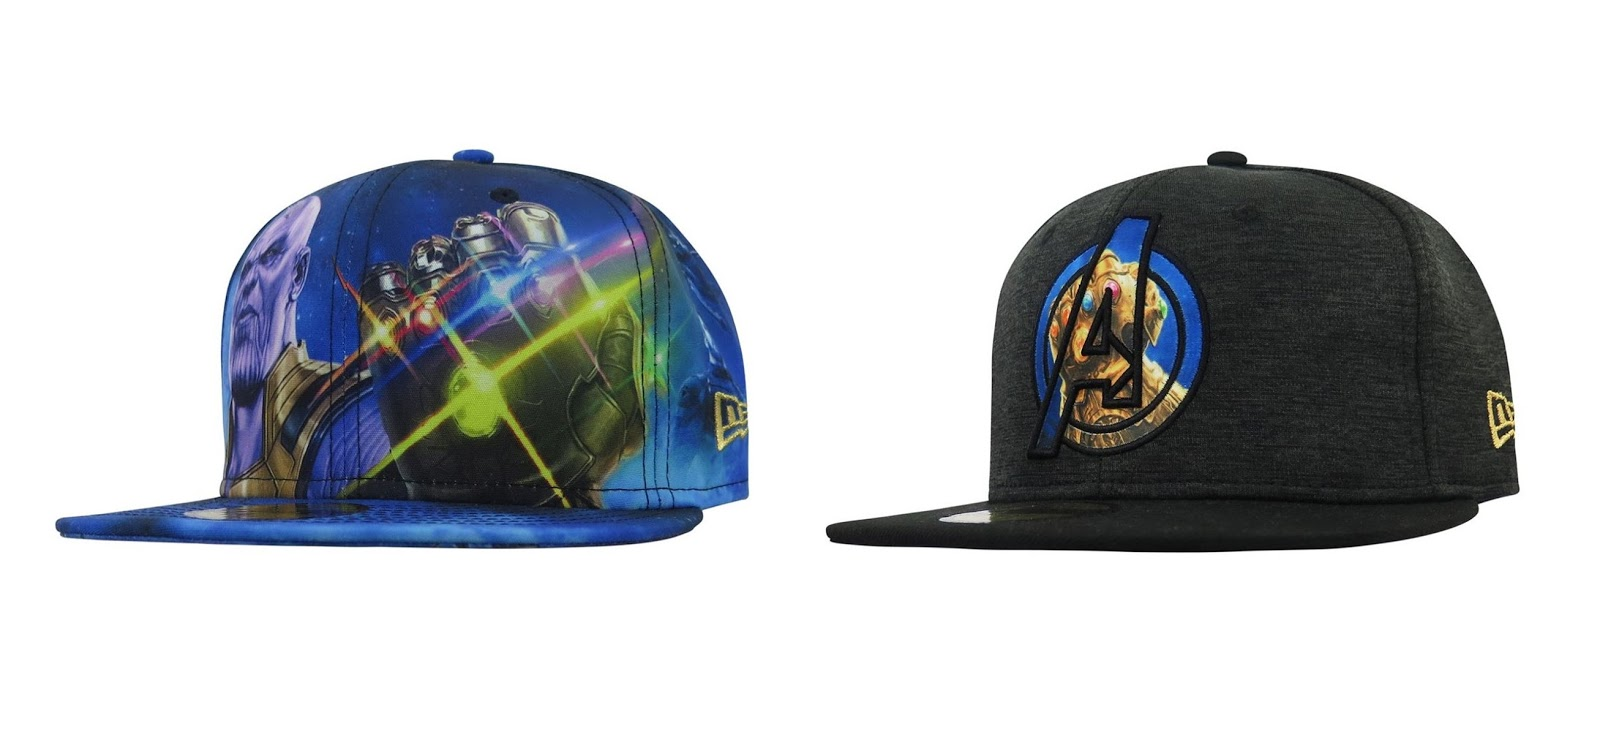 Avengers  Infinity War 59Fifty Fitted Hat Collection by New Era Cap x Marvel 066b808ef1c6